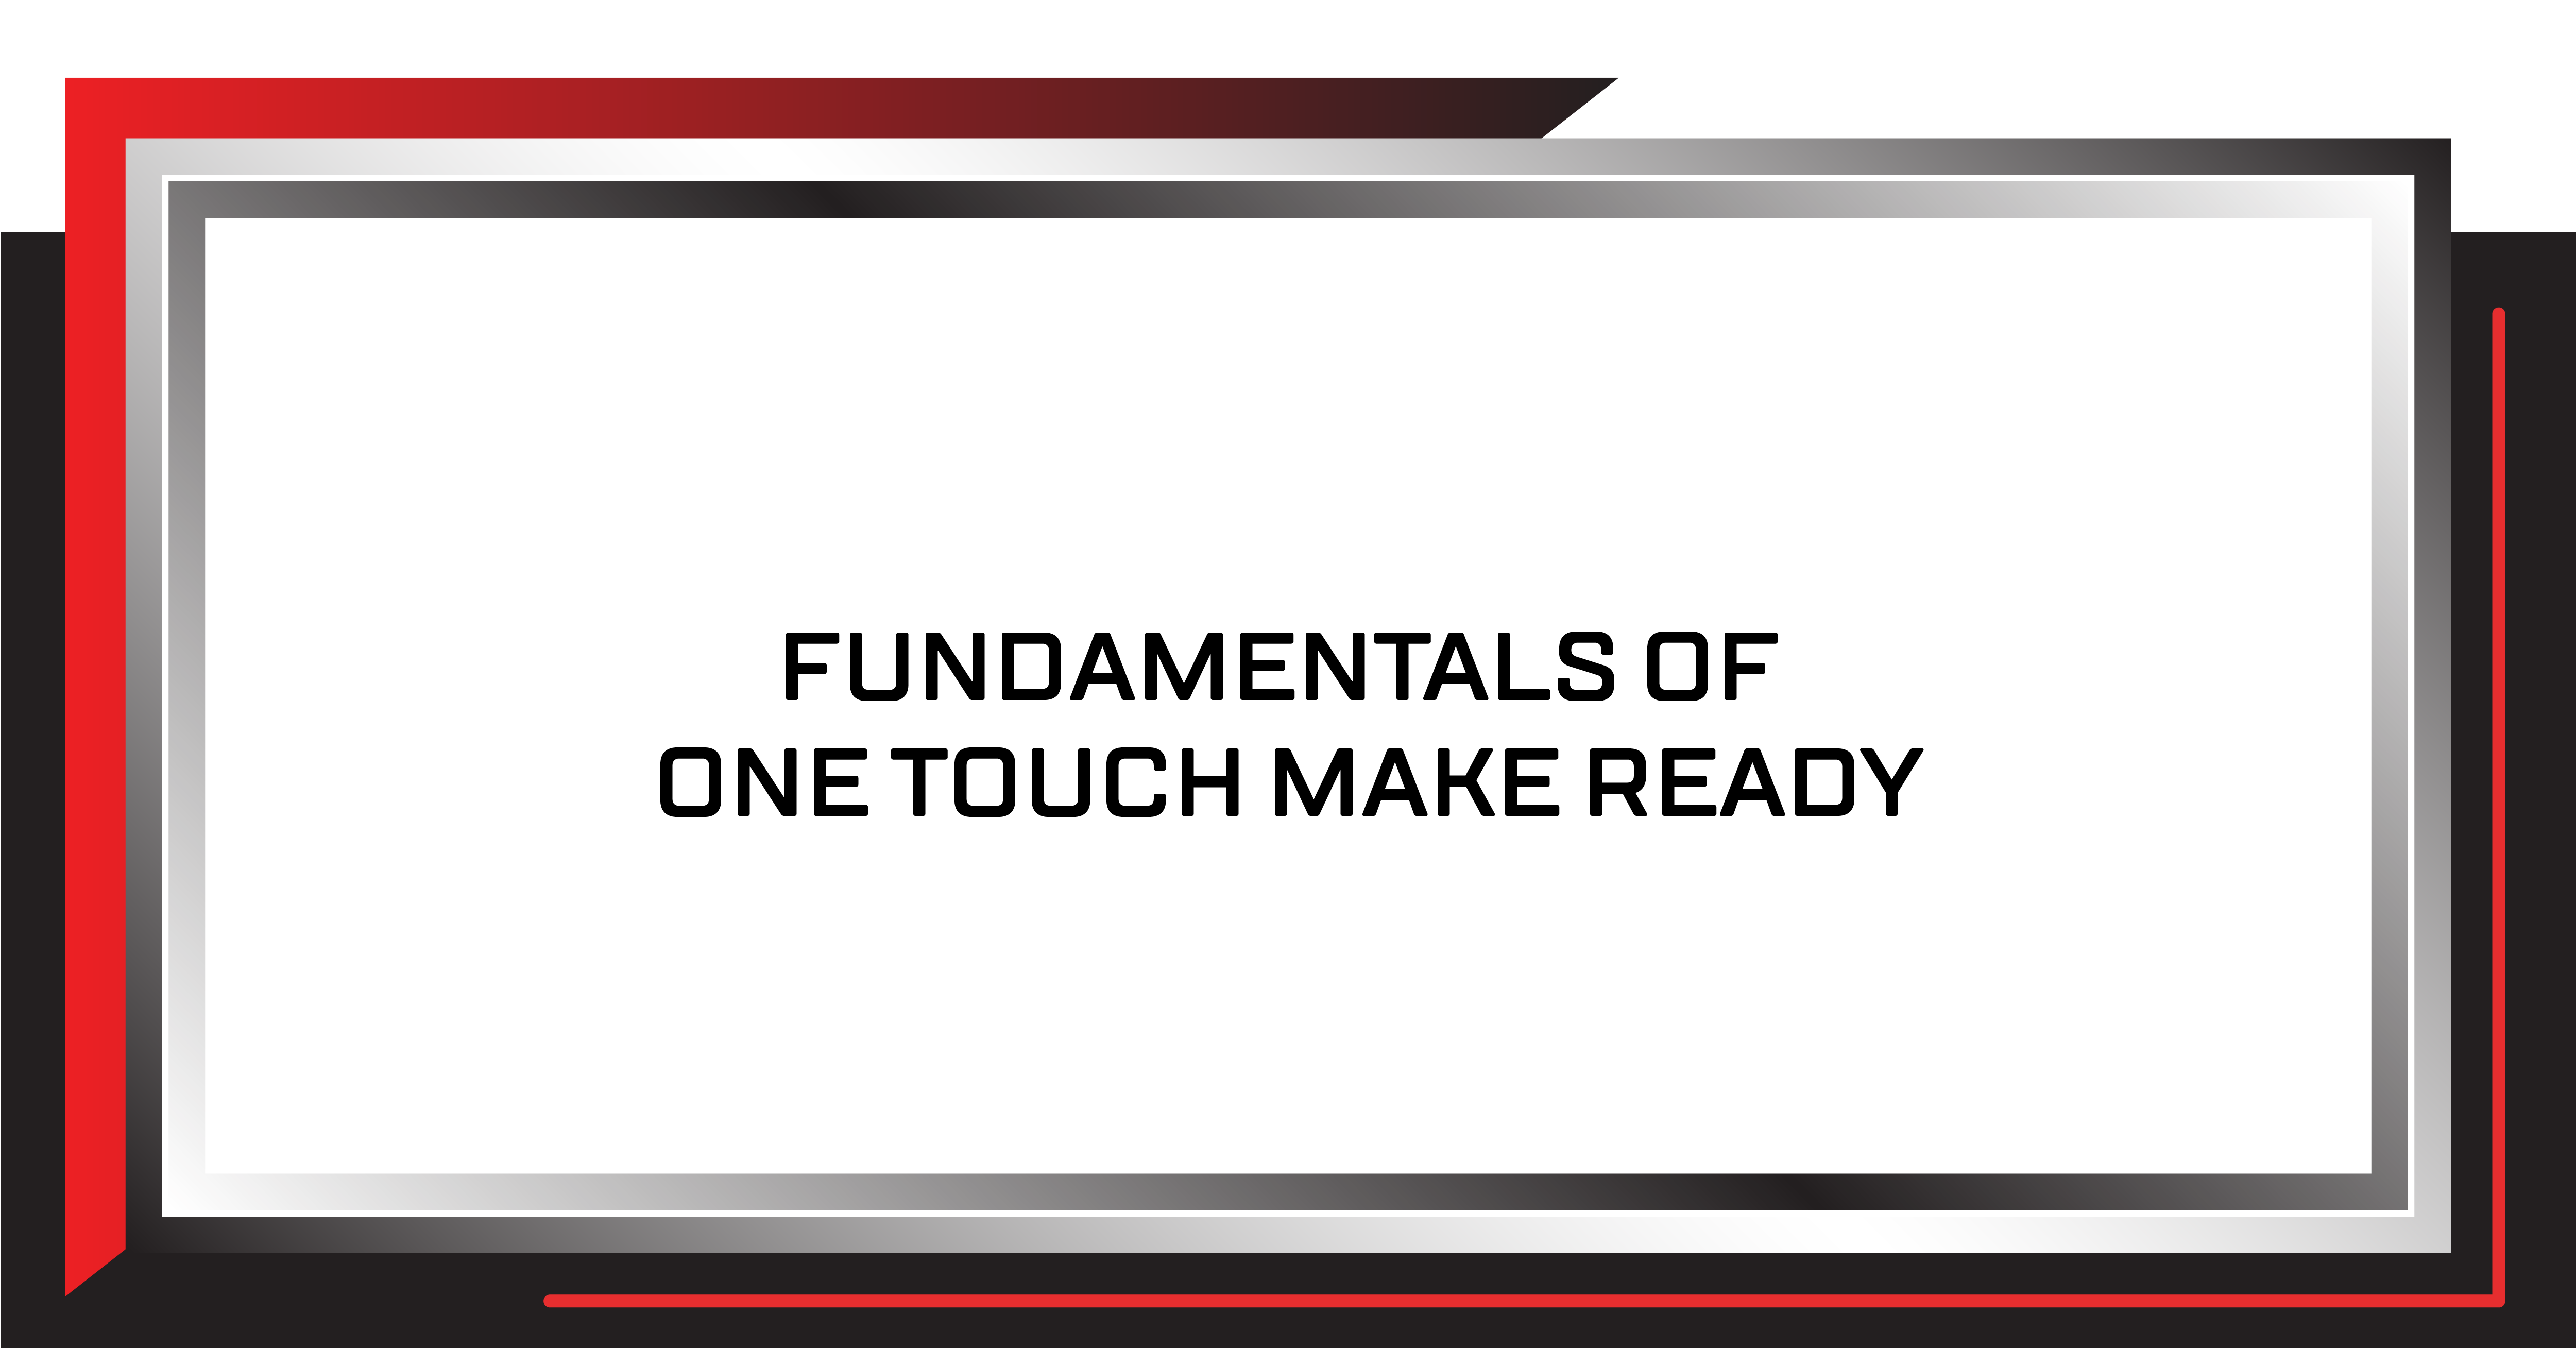 Fundamentals of One Touch Make Ready